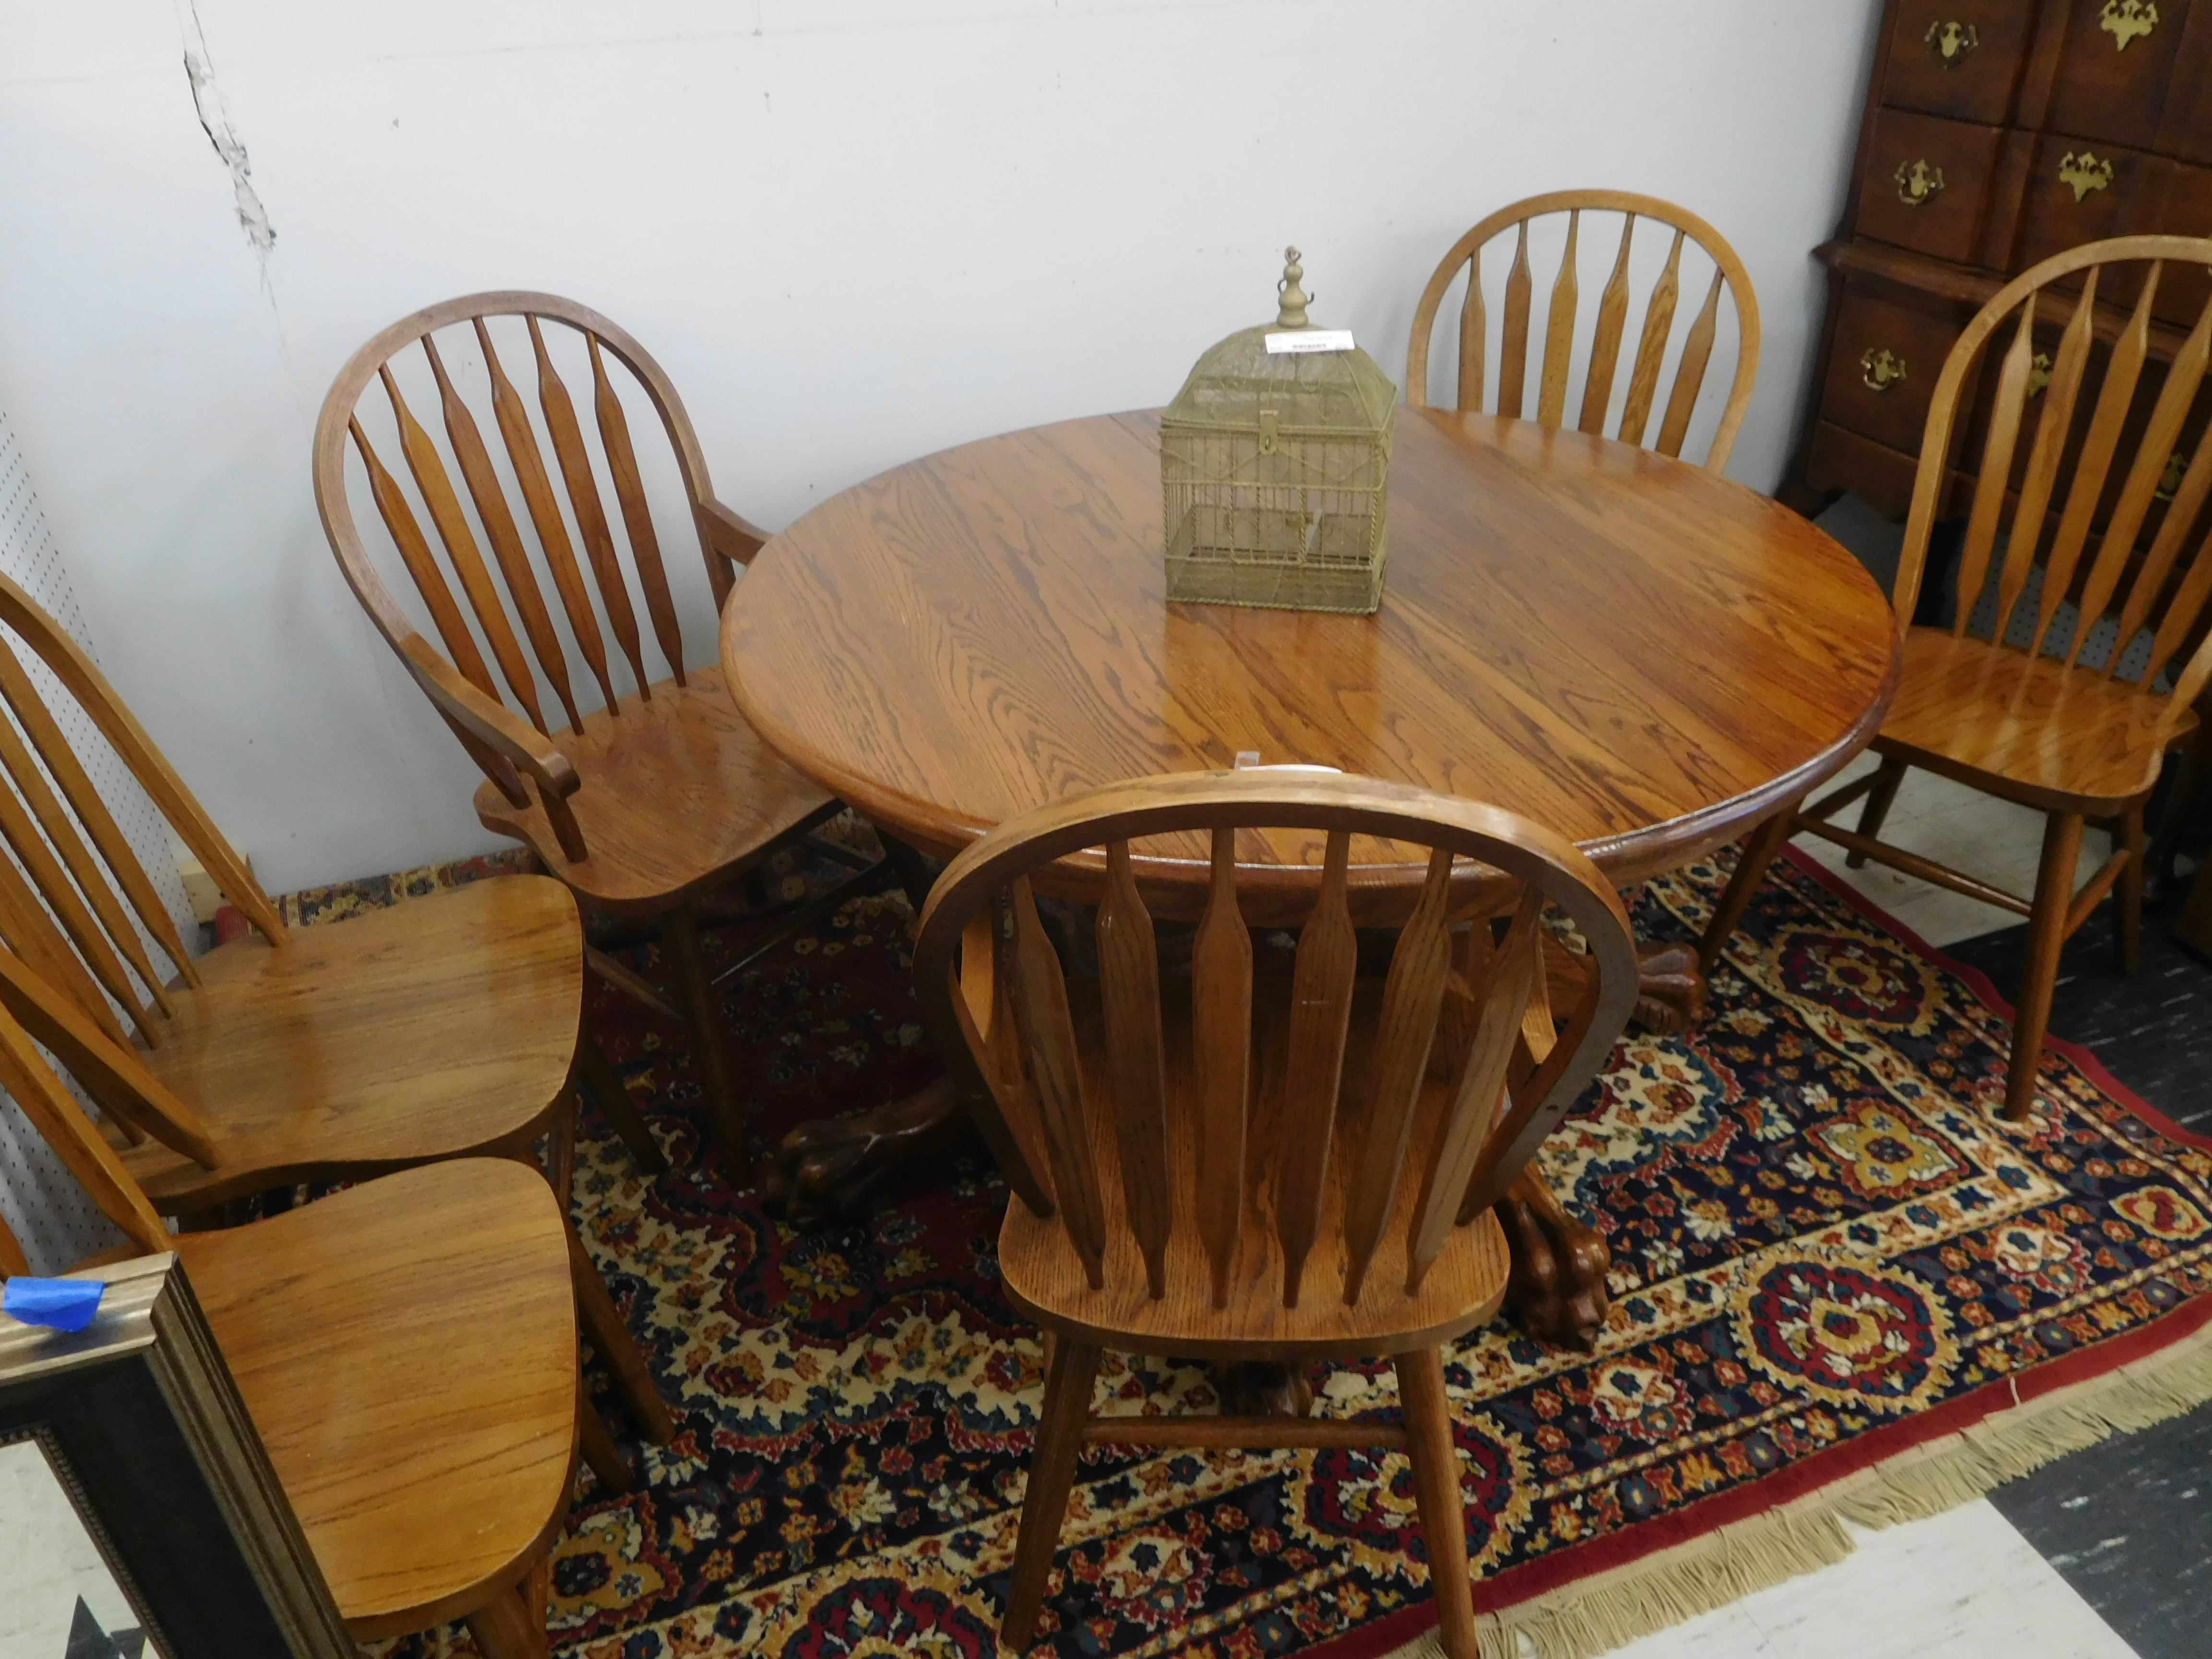 Solid Oak Dining Table with 6 Chairs and 2 Leaves - Extends to 8 Feet!